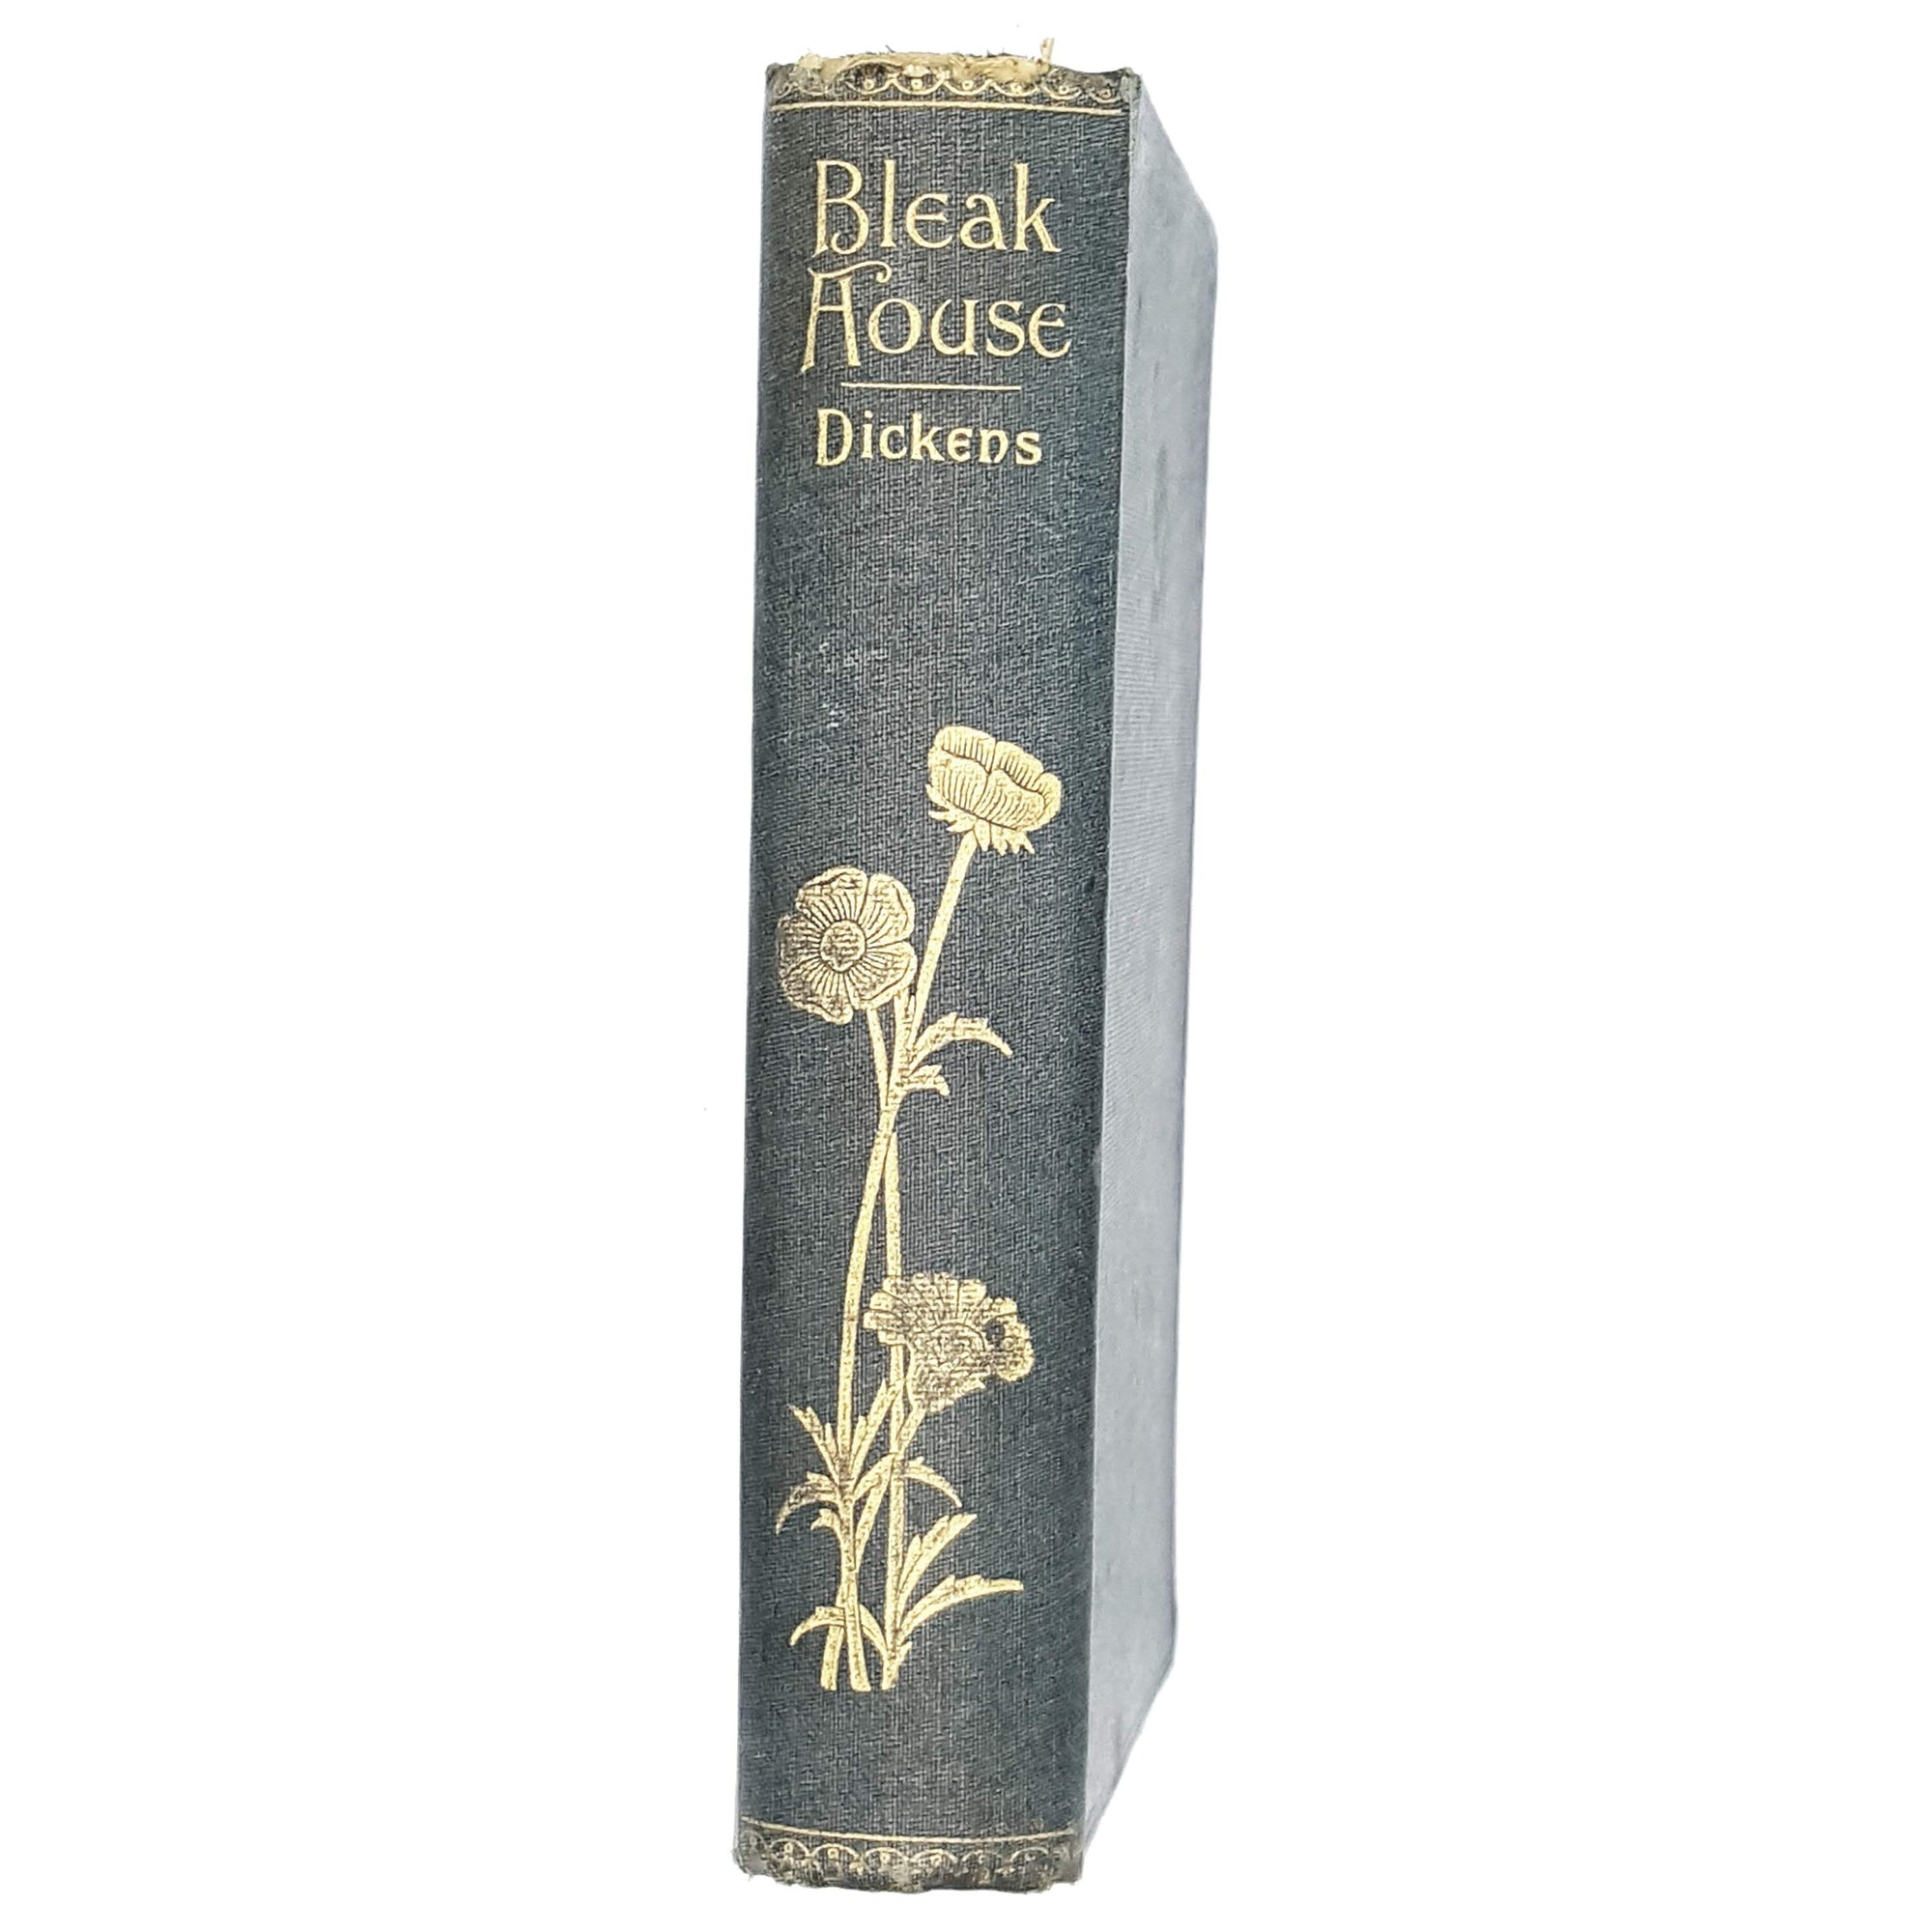 Charles Dickens's Bleak House Walter Scott edition